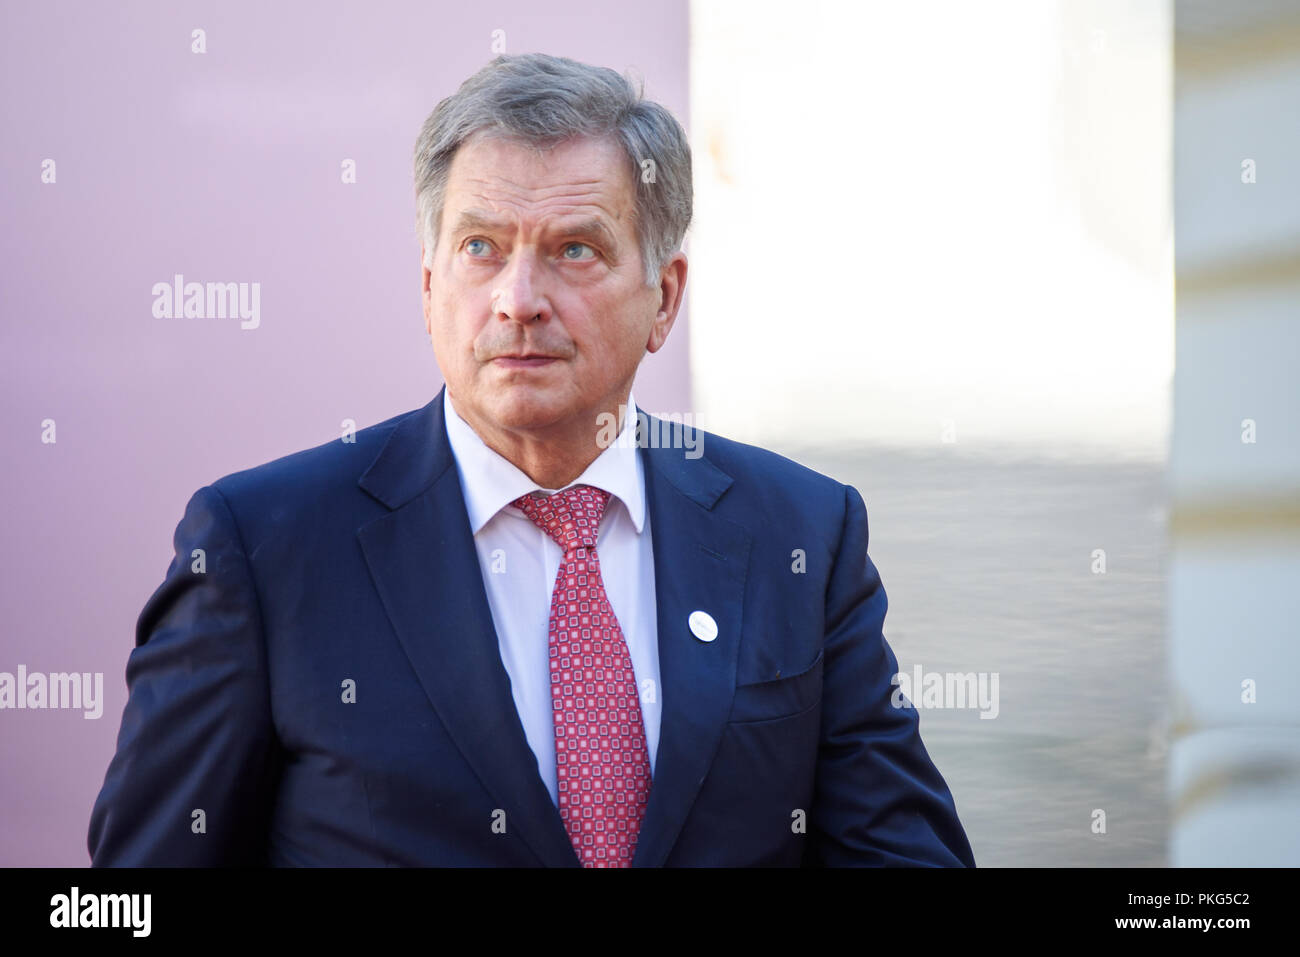 13.09.2018. RUNDALE, LATVIA. Sauli Niinistö, President of Finland, during Official arrival ceremony of the 14th Informal Meeting of the Arraiolos Group in Rundale palace, Latvia. - Stock Image